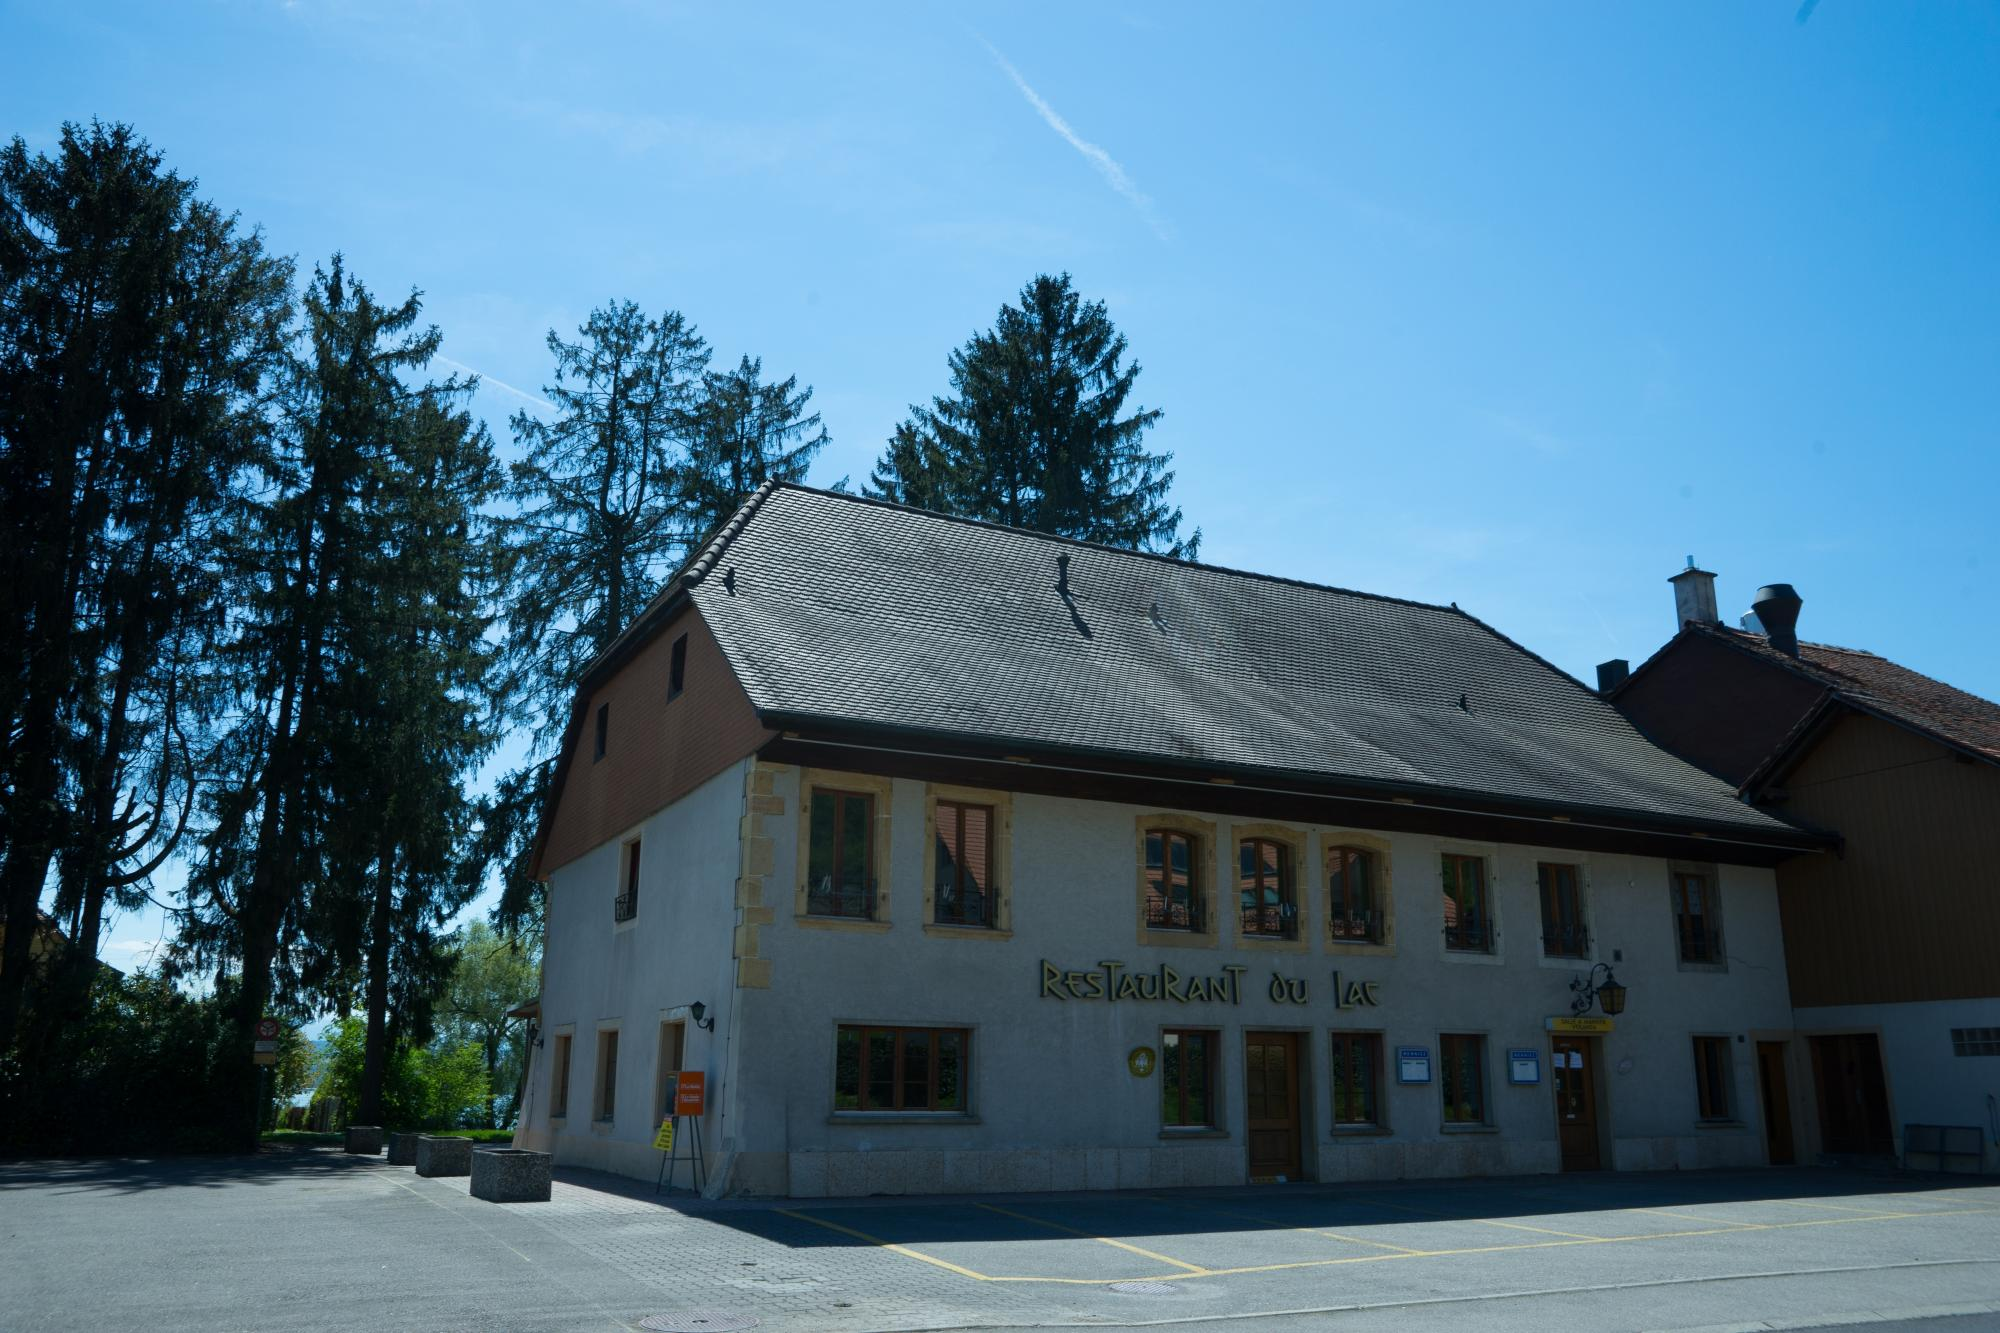 Restaurant du Lac de Vallamand